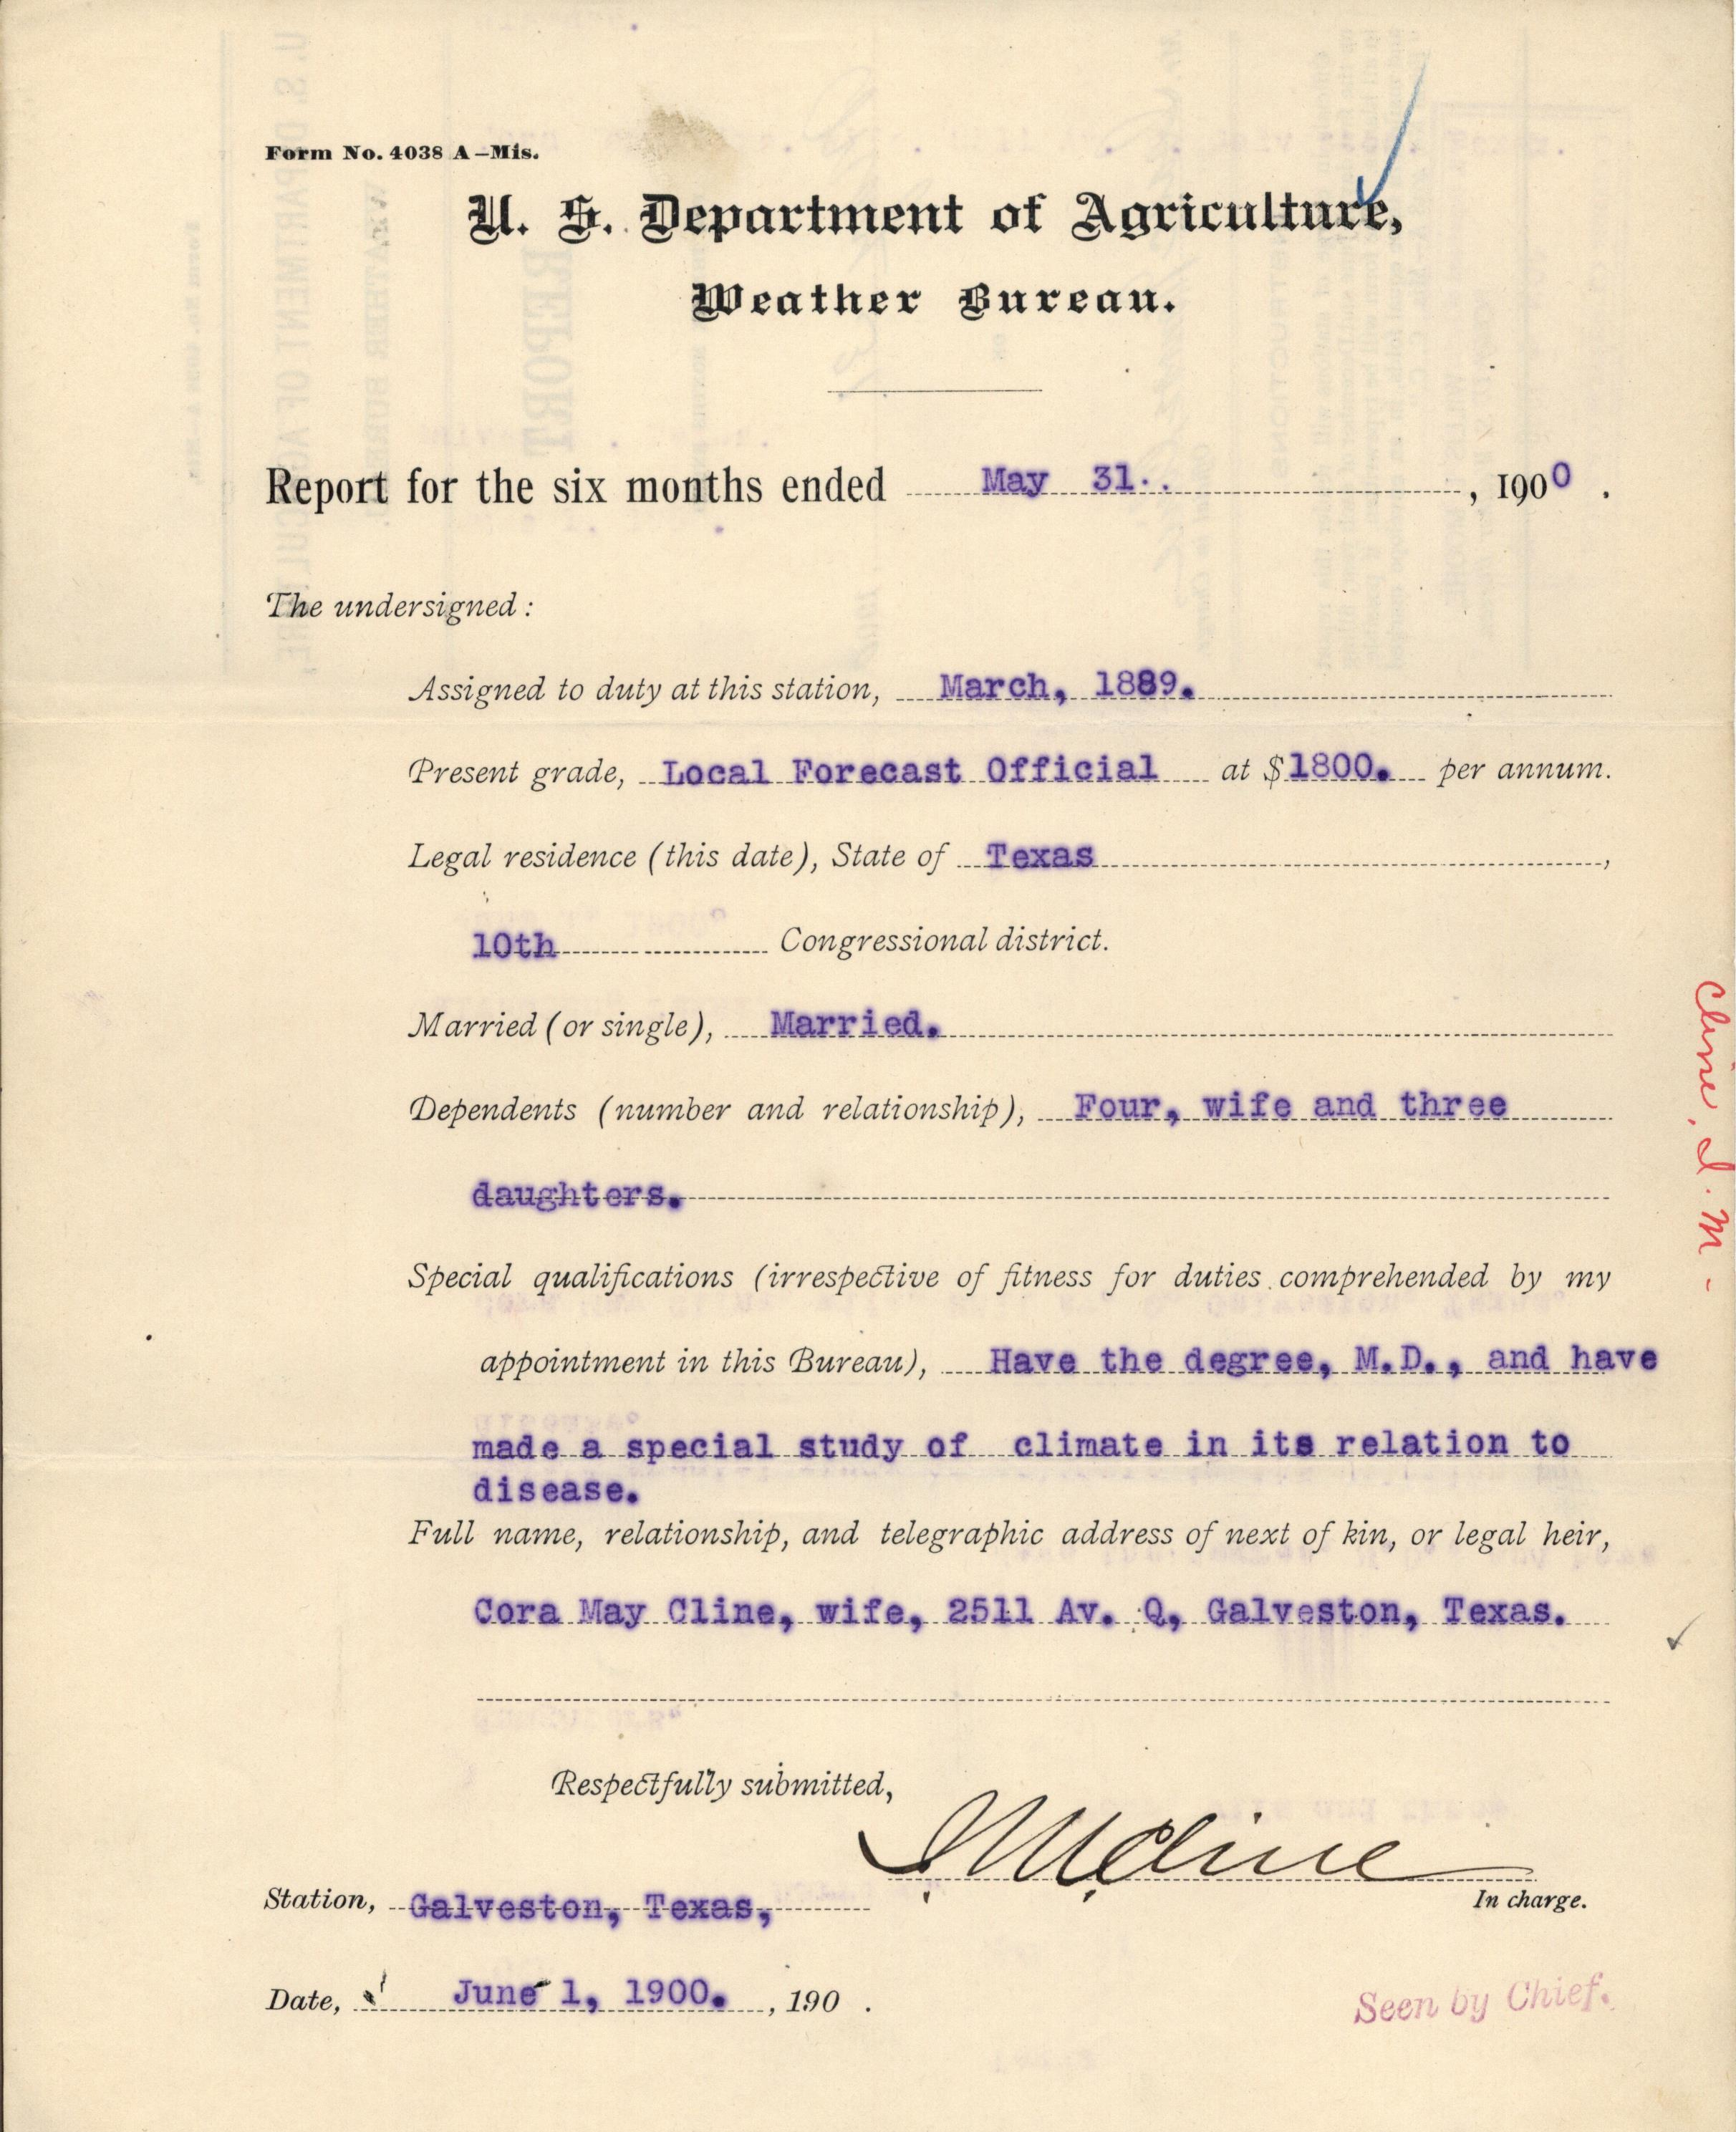 Weather Bureau Report, May 31, 1900. (National Archives at St. Louis)